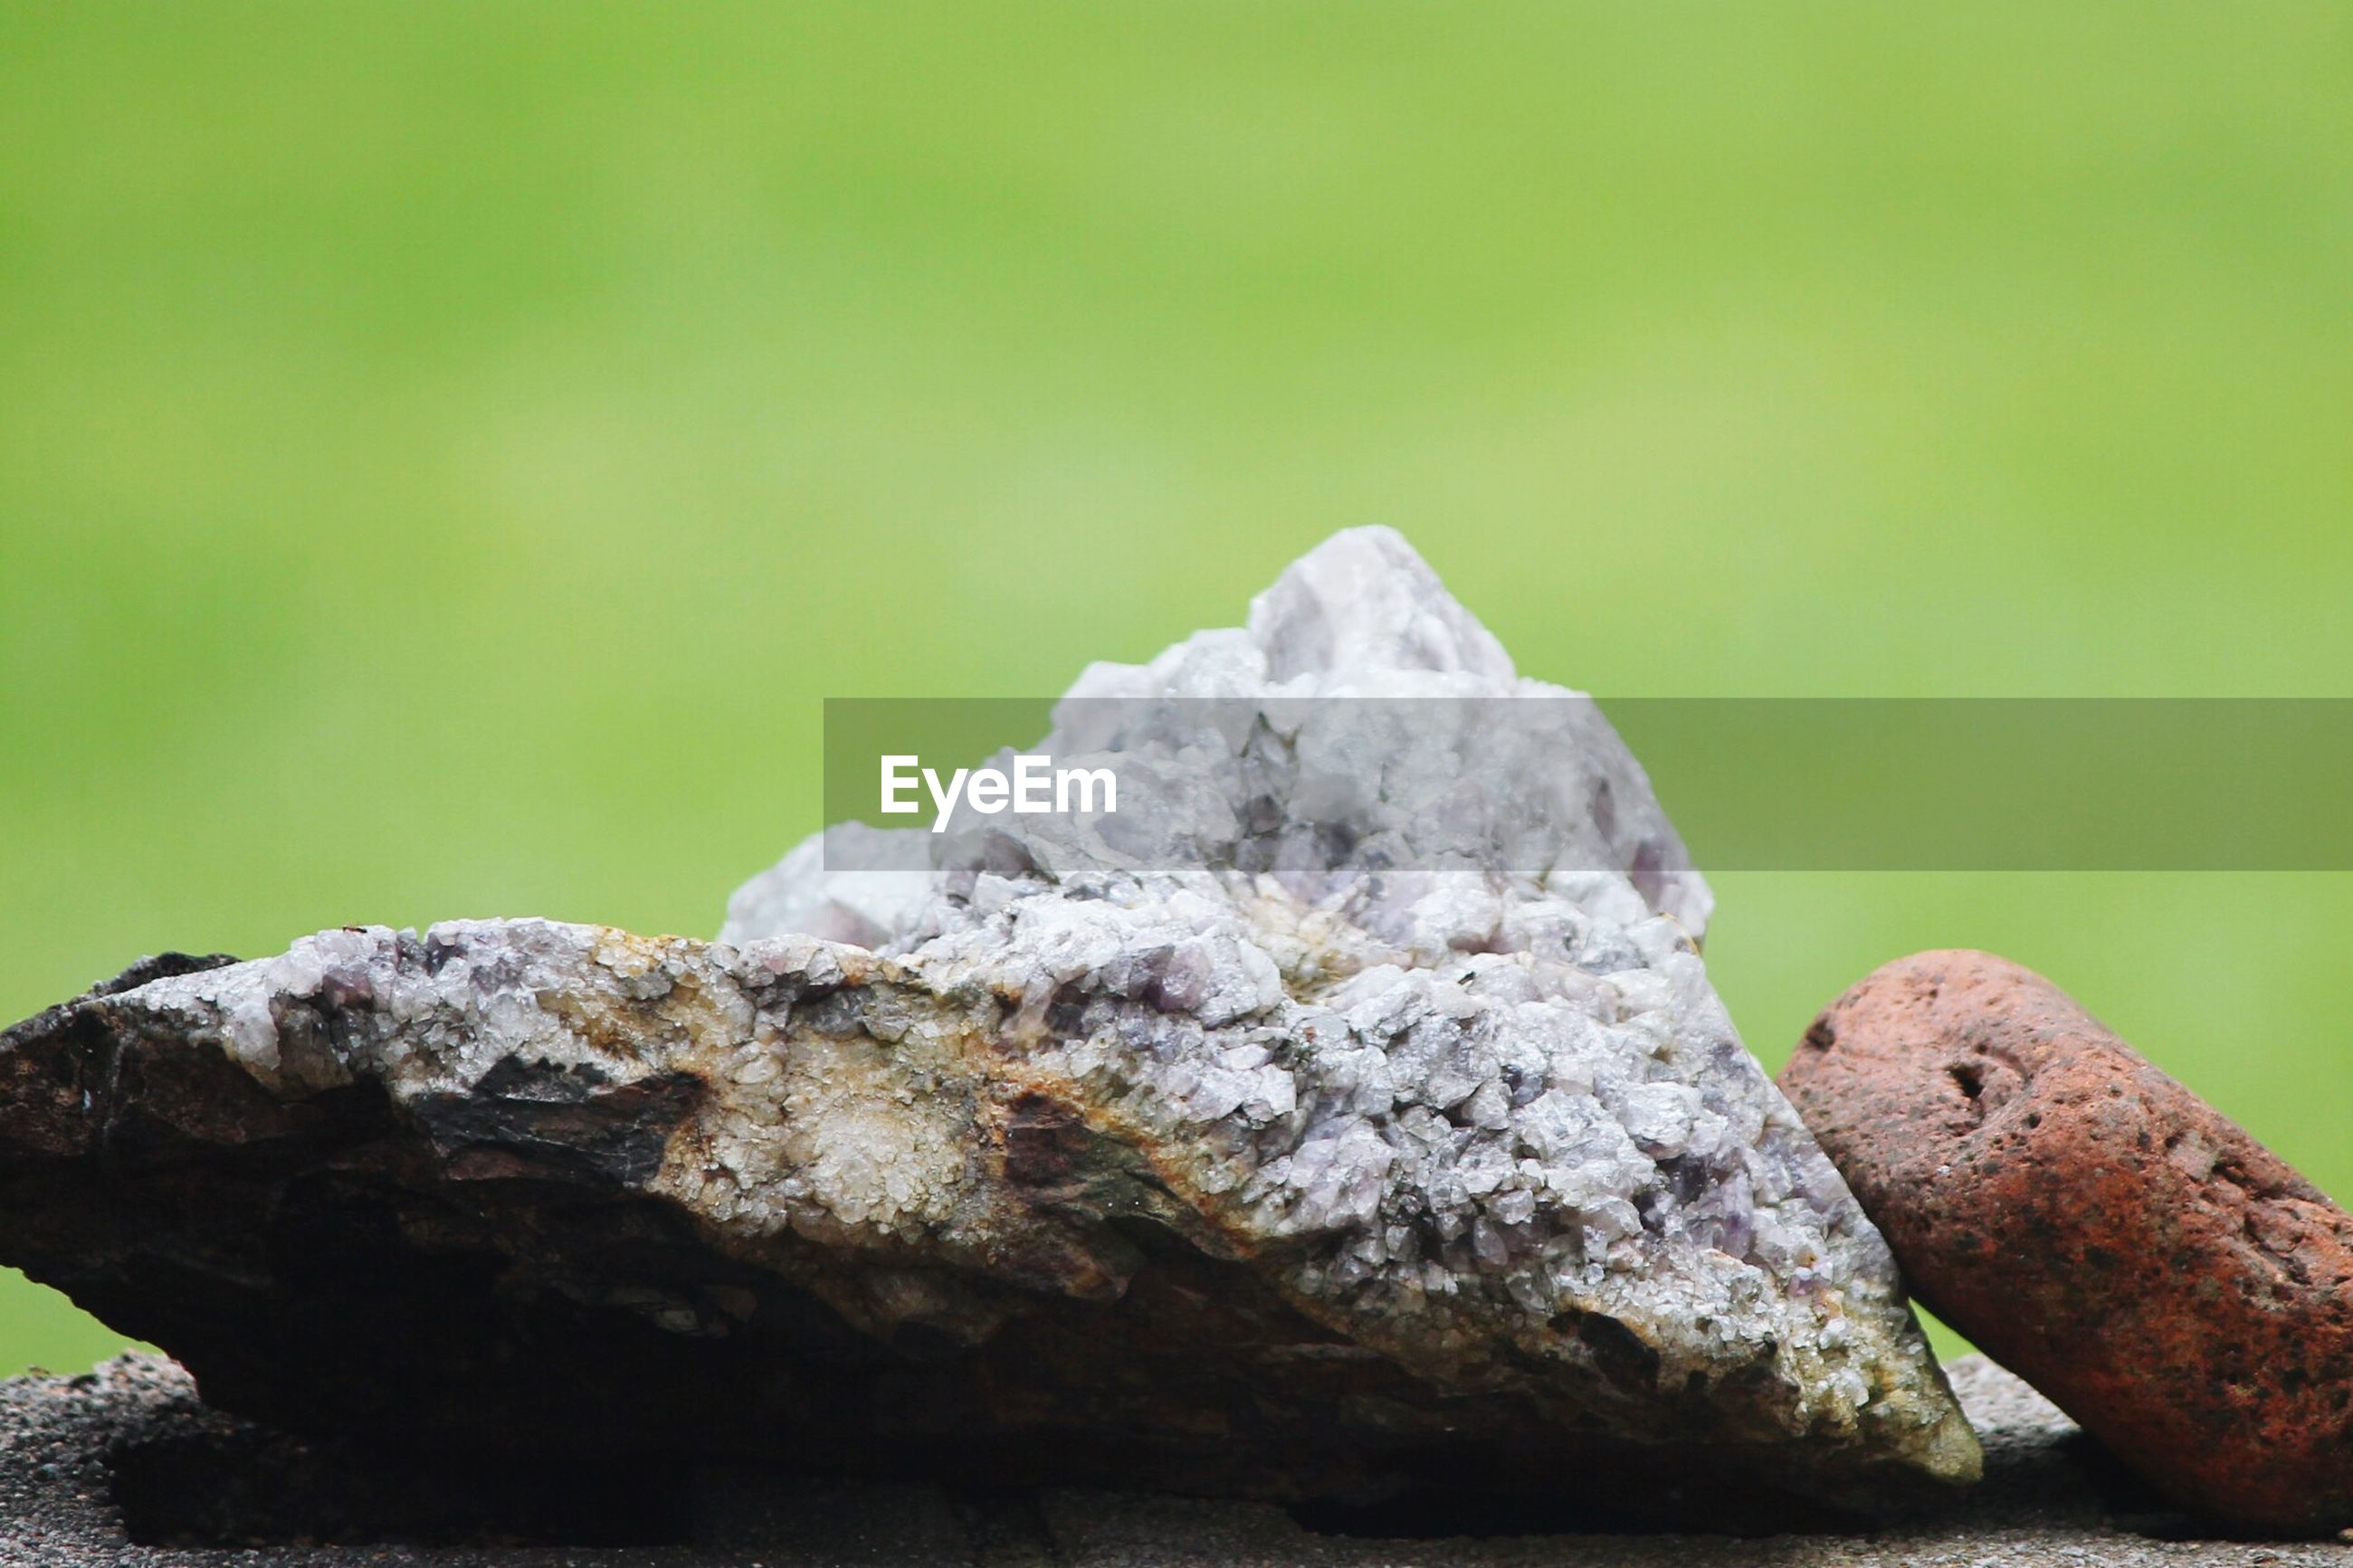 CLOSE-UP OF ROCKS AGAINST BLURRED BACKGROUND